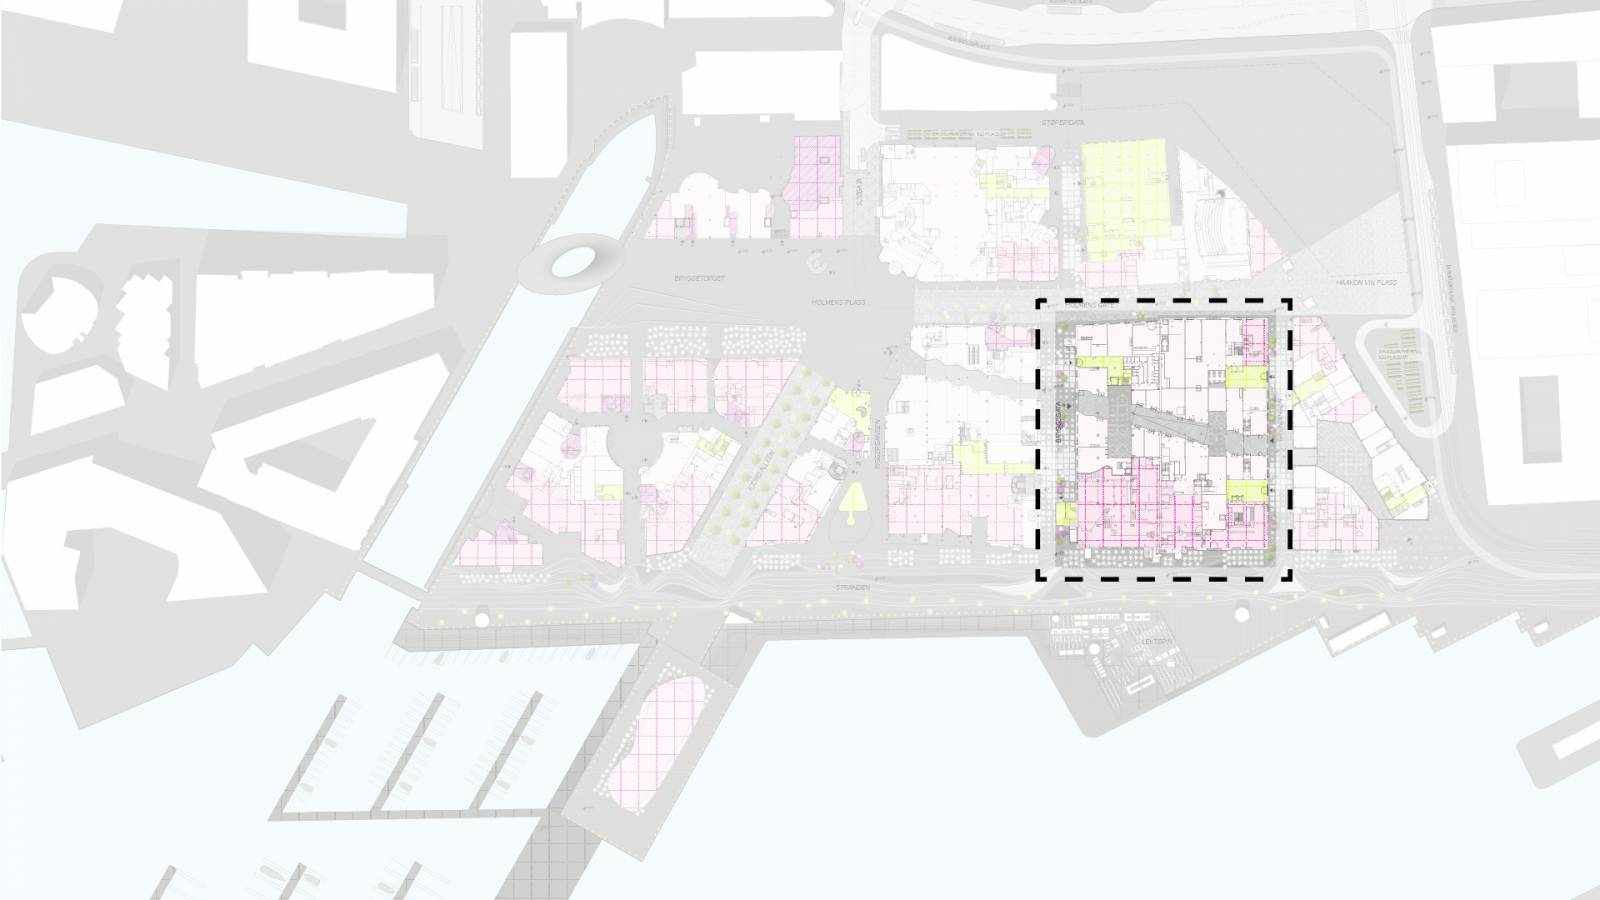 MASTERPLAN LOCATION - Aker Shipyard Workshops - SPOL Architects